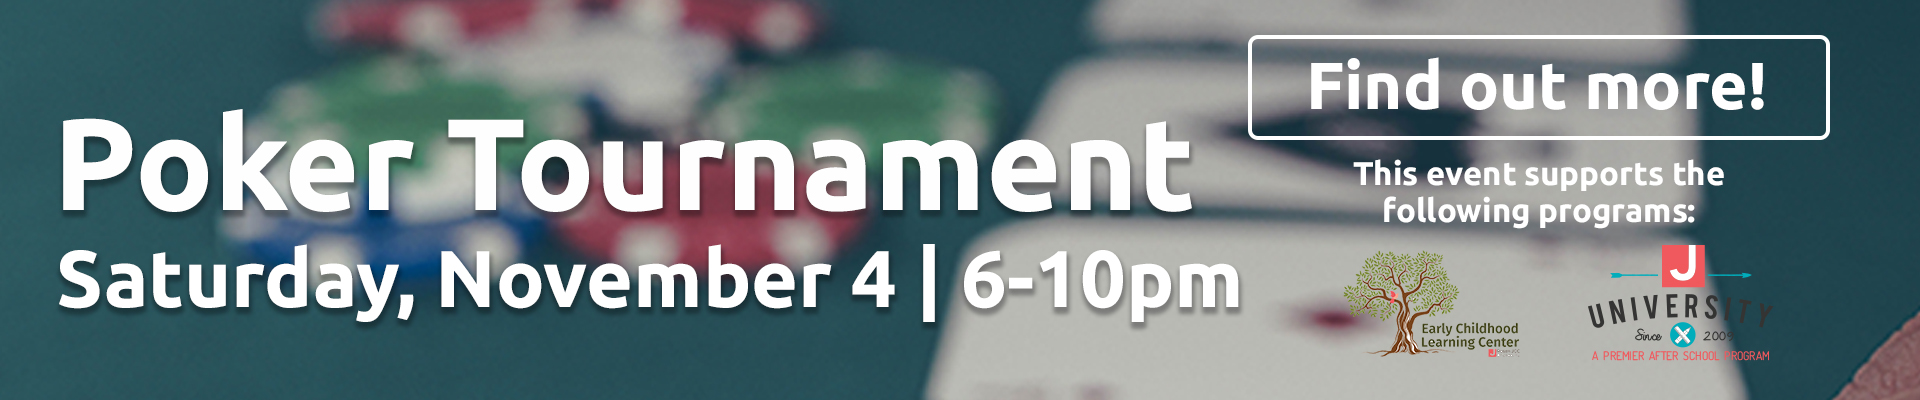 poker-tournament-banner